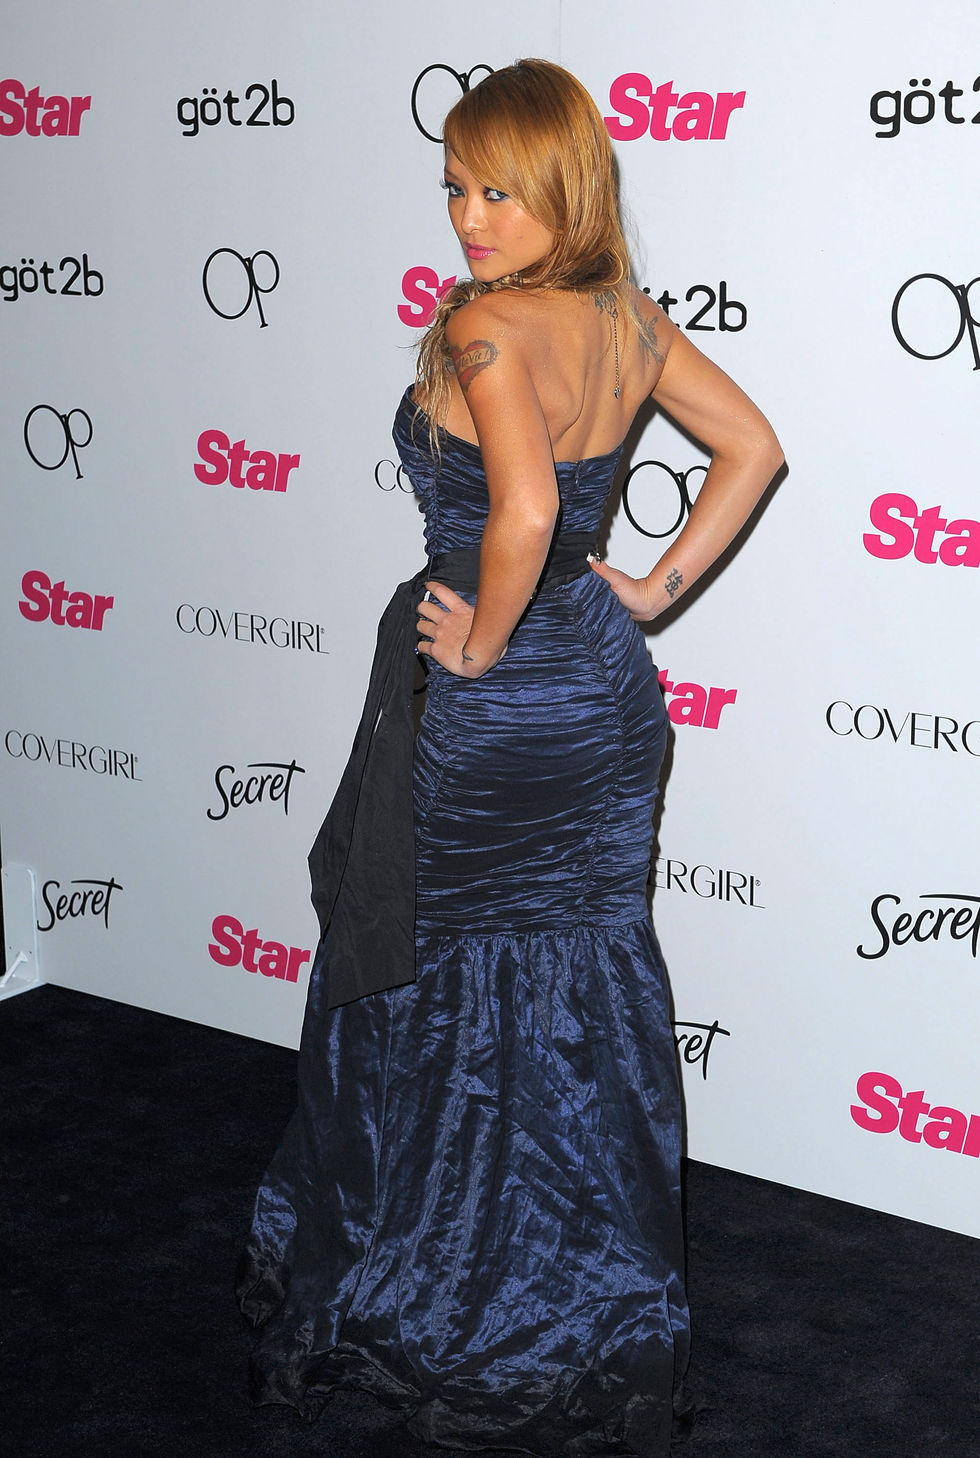 tila-tequila-star-magazines-5th-anniversary-party-01